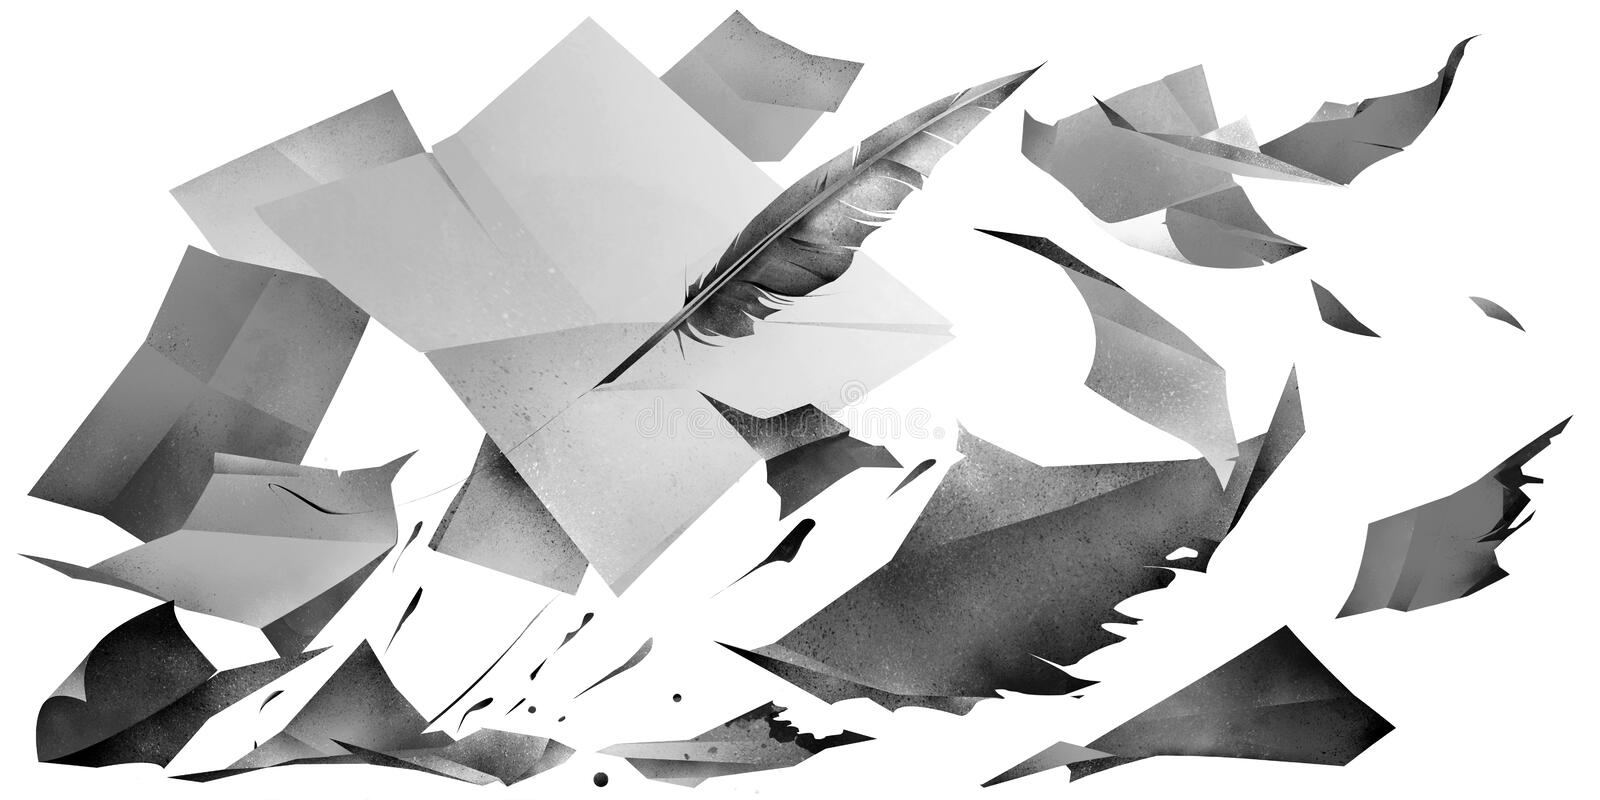 Drawn flying sheets of paper with a feather on a white background stock photos